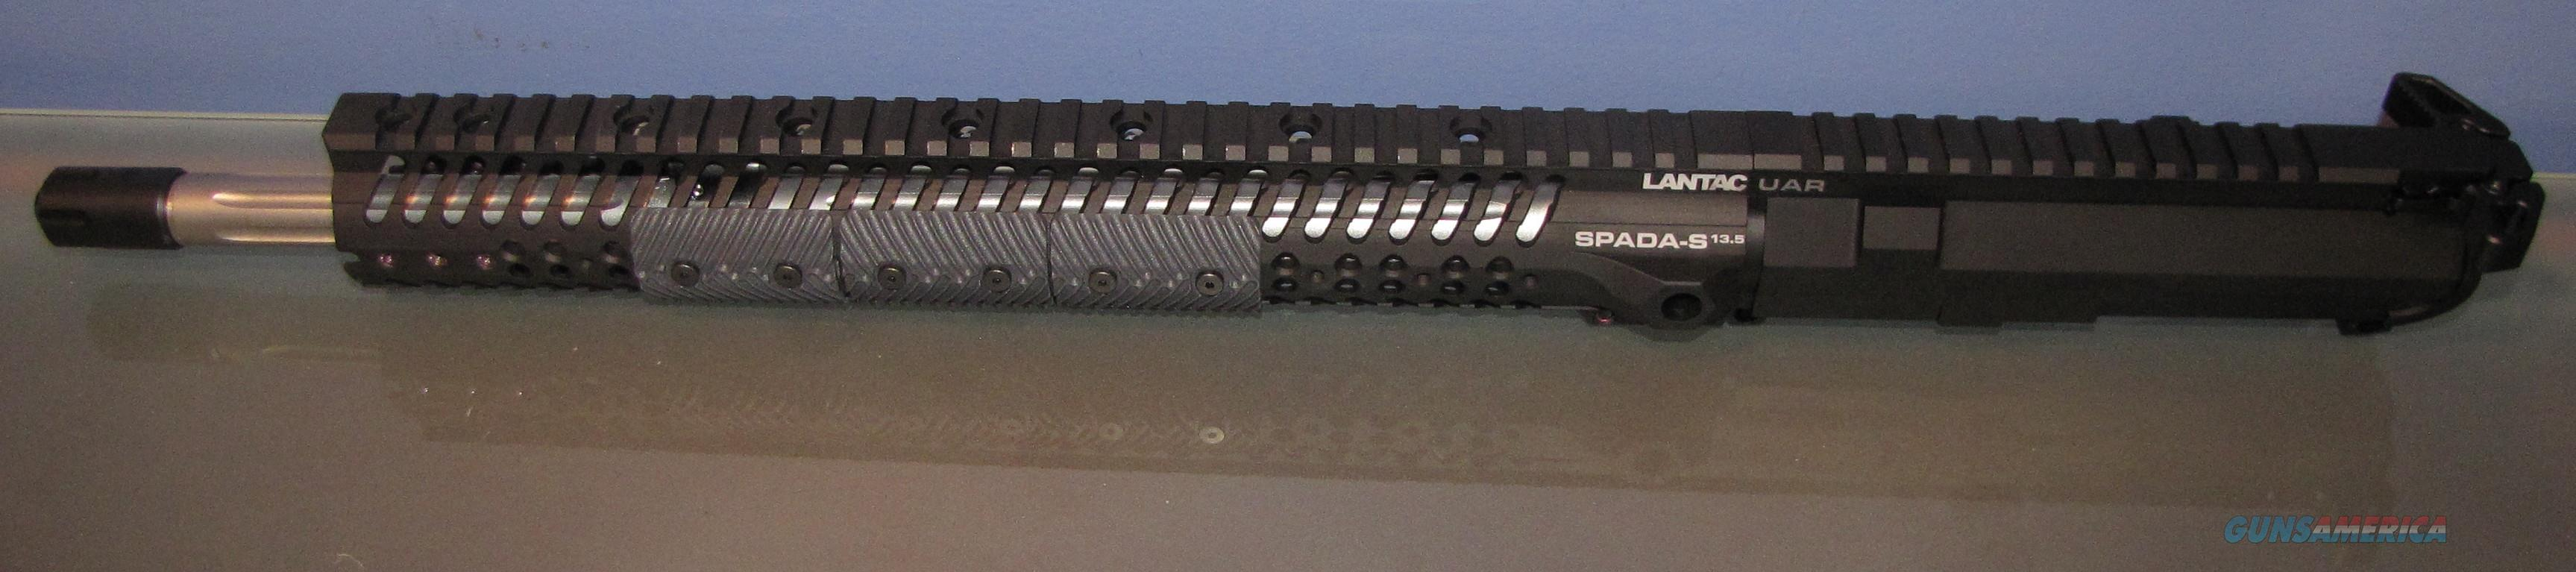 "B.T.A. Lantac Recon 6.8 SPC II 16"" ar15 upper / No CC Fees  Non-Guns > Gun Parts > M16-AR15 > Upper Only"